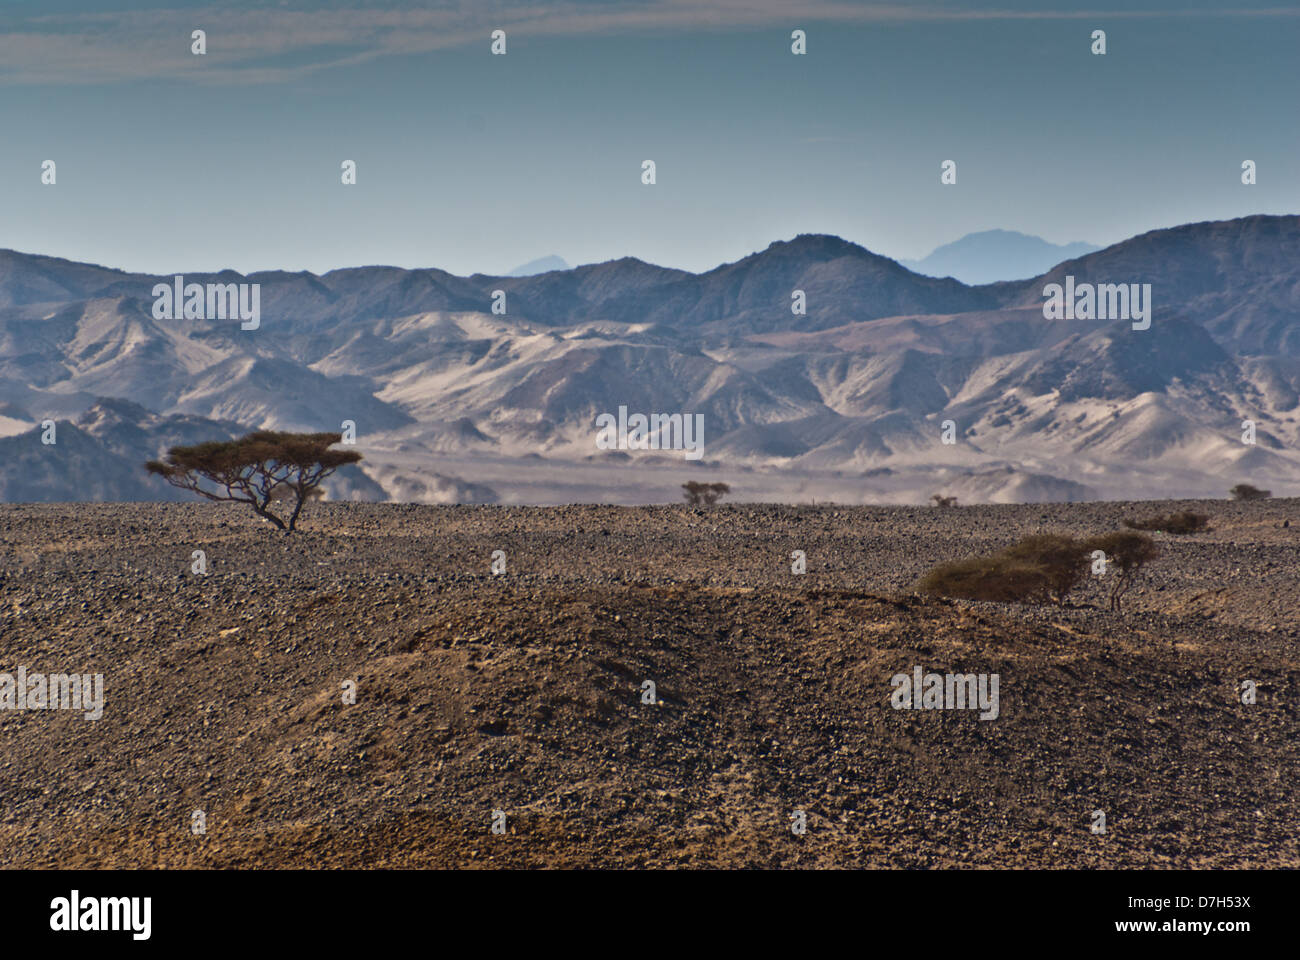 Landscape with acacias and mountains, Wadi Gamal (also spelled as Gemel, Gimal, Gemal or Jimal) National Park, Upper - Stock Image